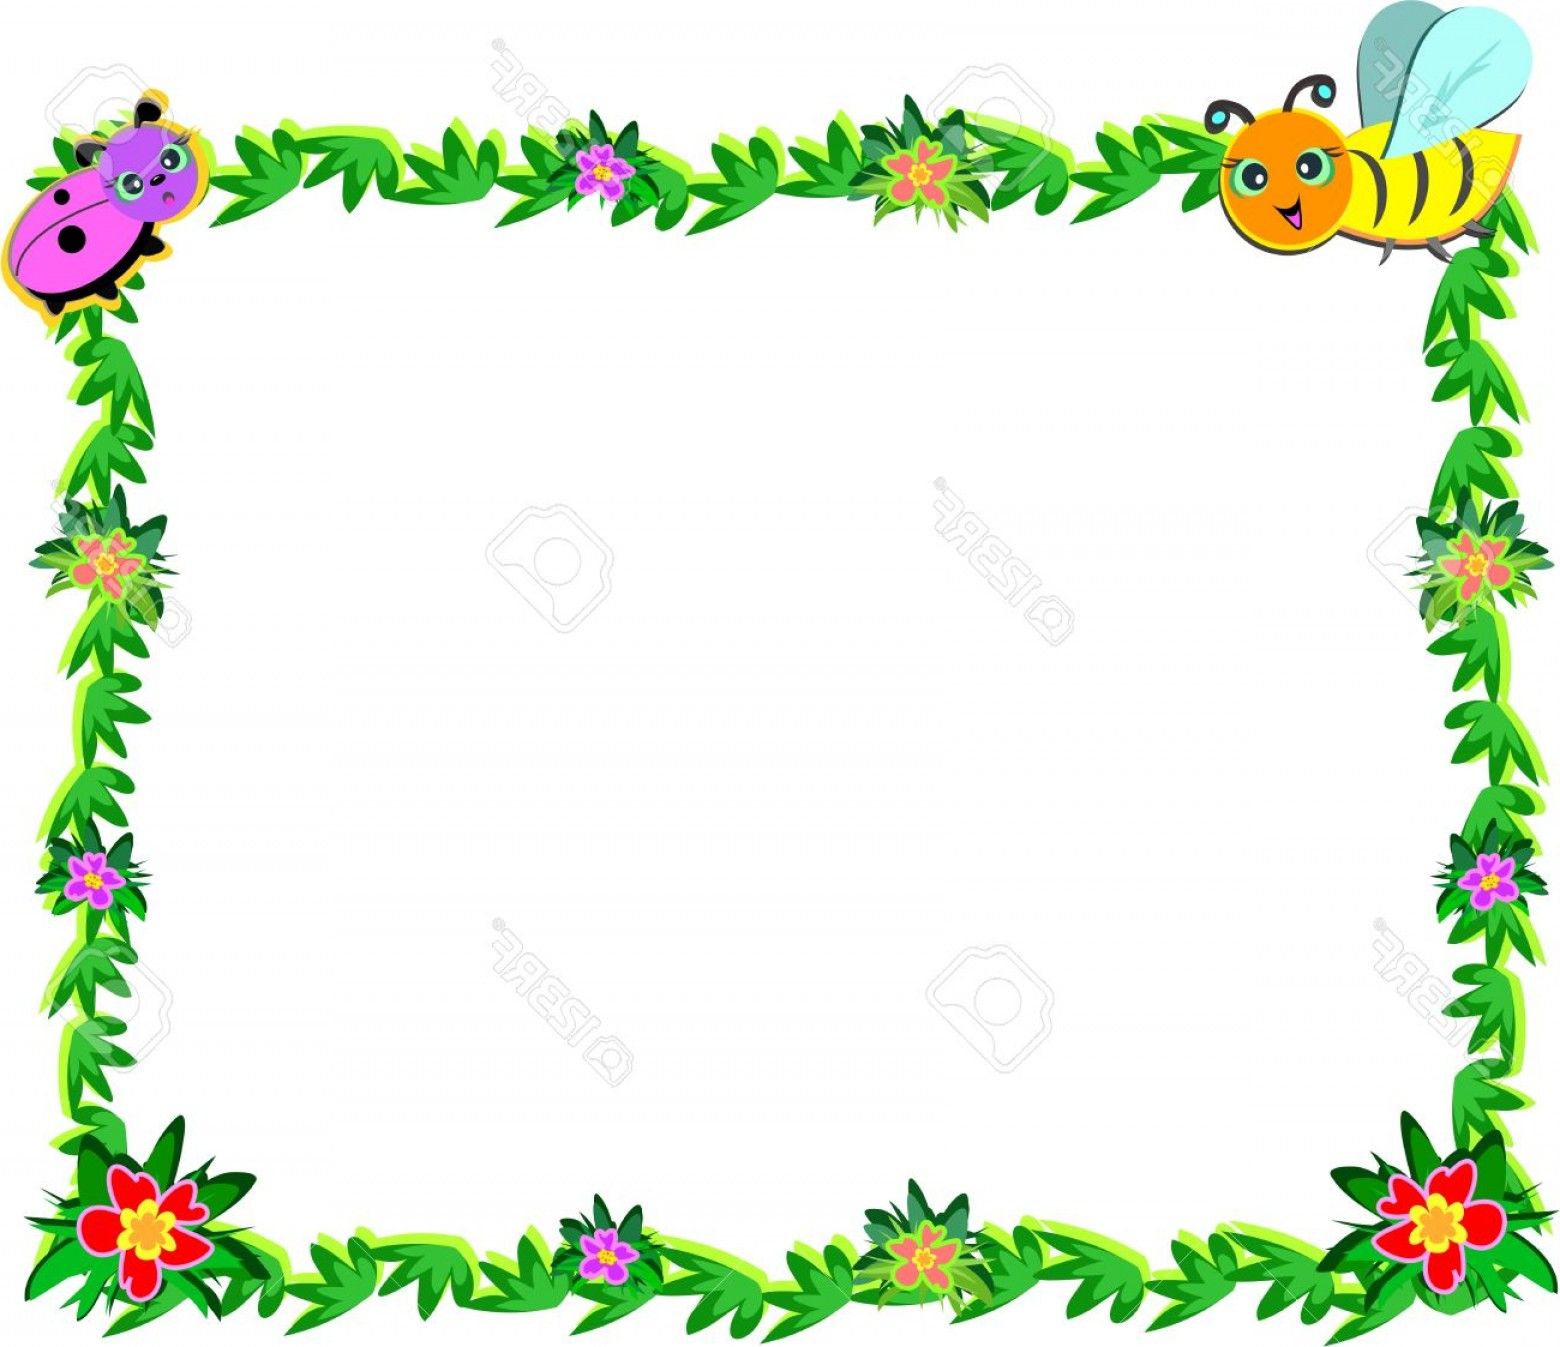 photograph regarding Free Printable Picture Frames and Borders referred to as Disney Frames Flower Vectors CreateMePink